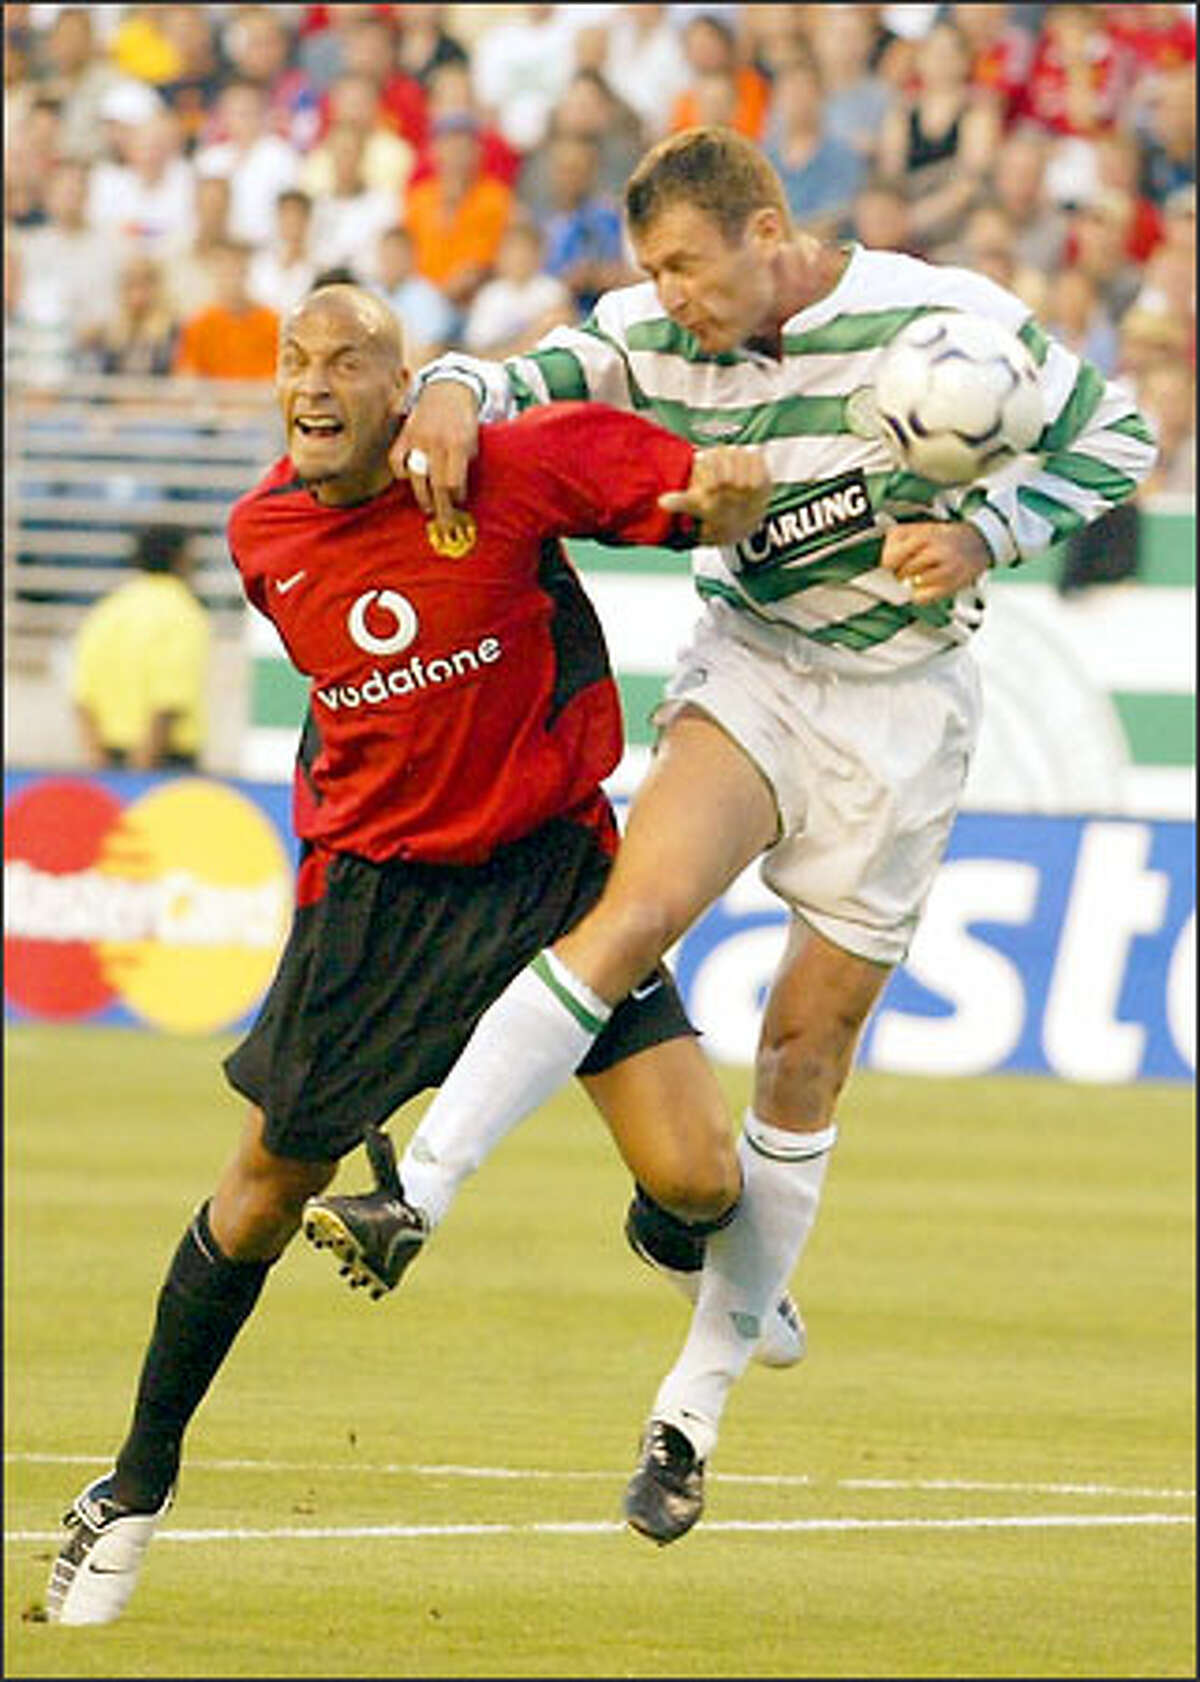 Manchester United's Rio Ferdinand, left, and Celtic's Chris Sutton battle for the ball during the first half.